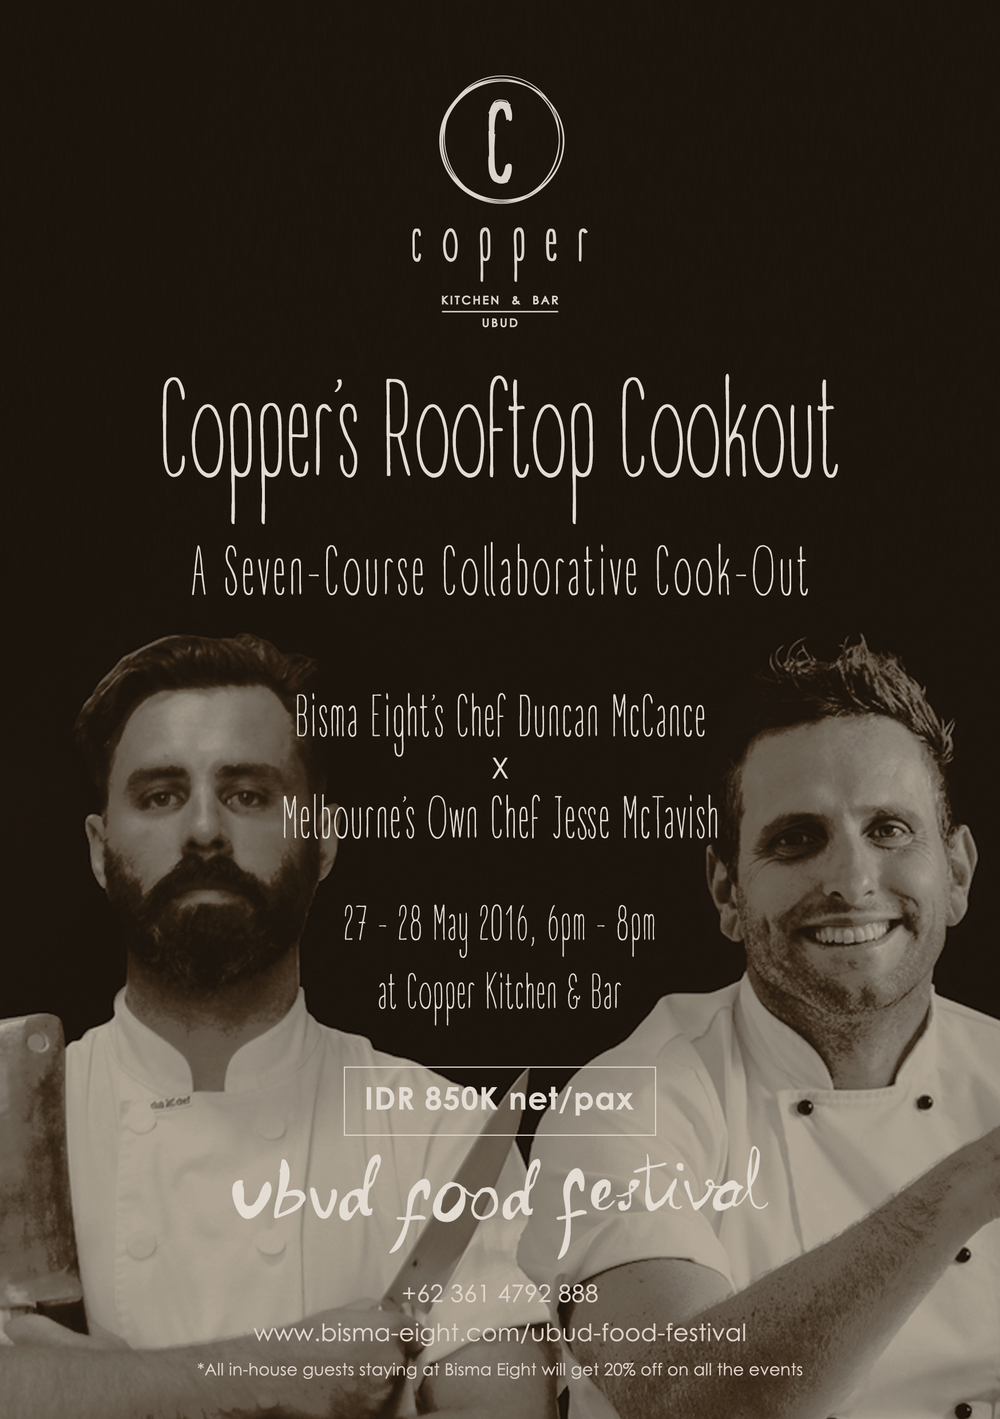 COPPER'S ROOFTOP COOKOUT!